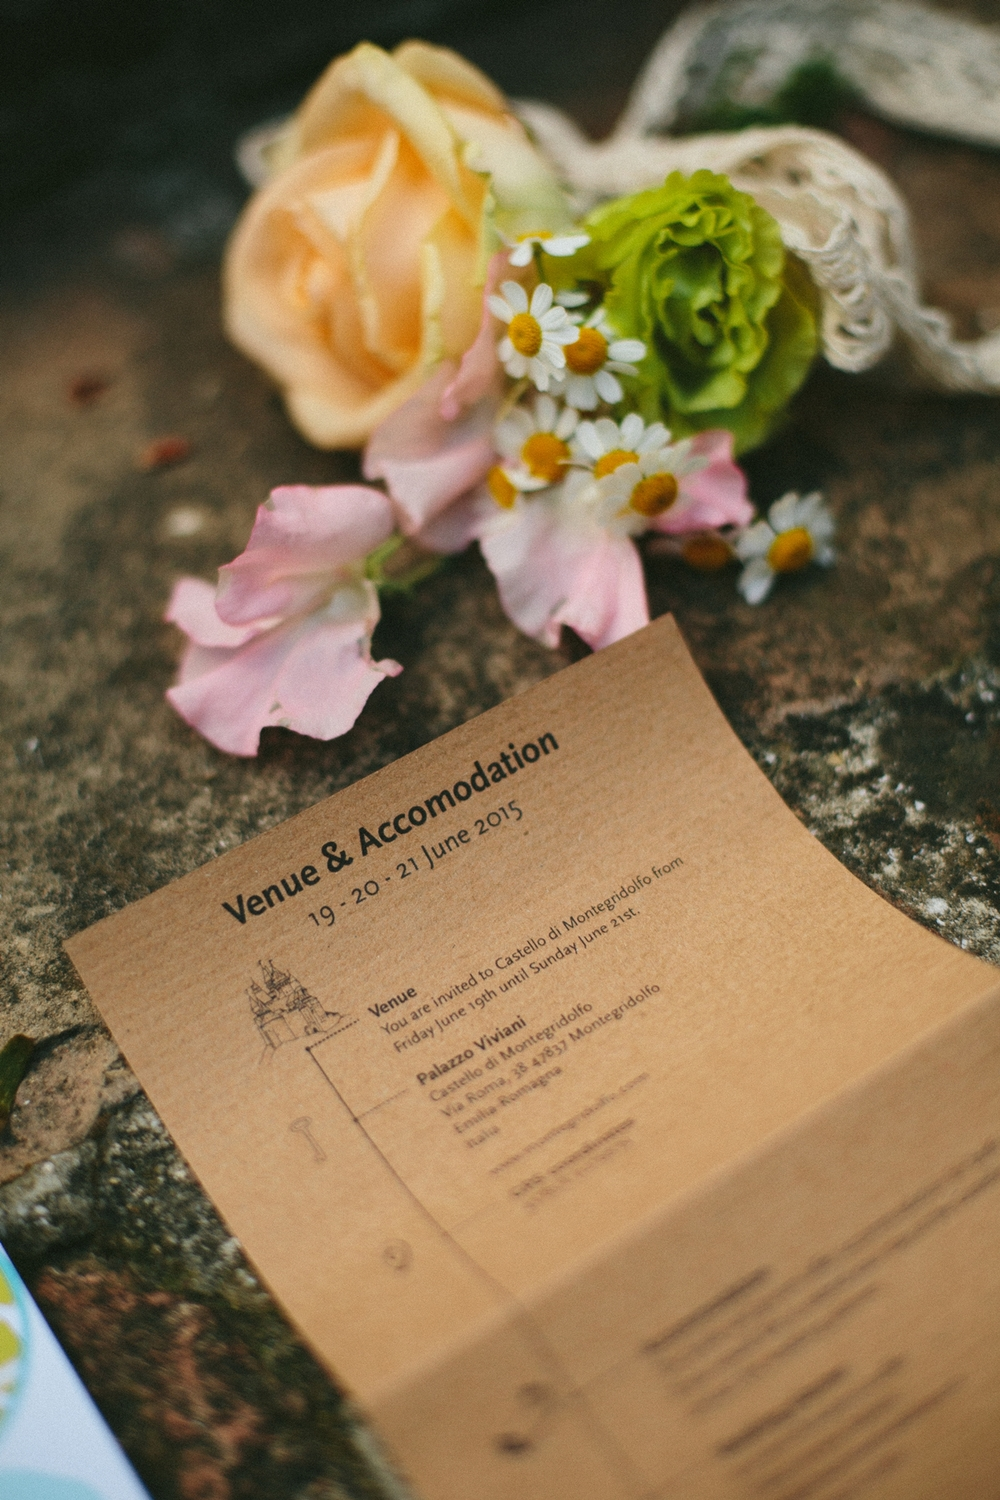 venue-&-accomodation-wedding-stationary.jpg